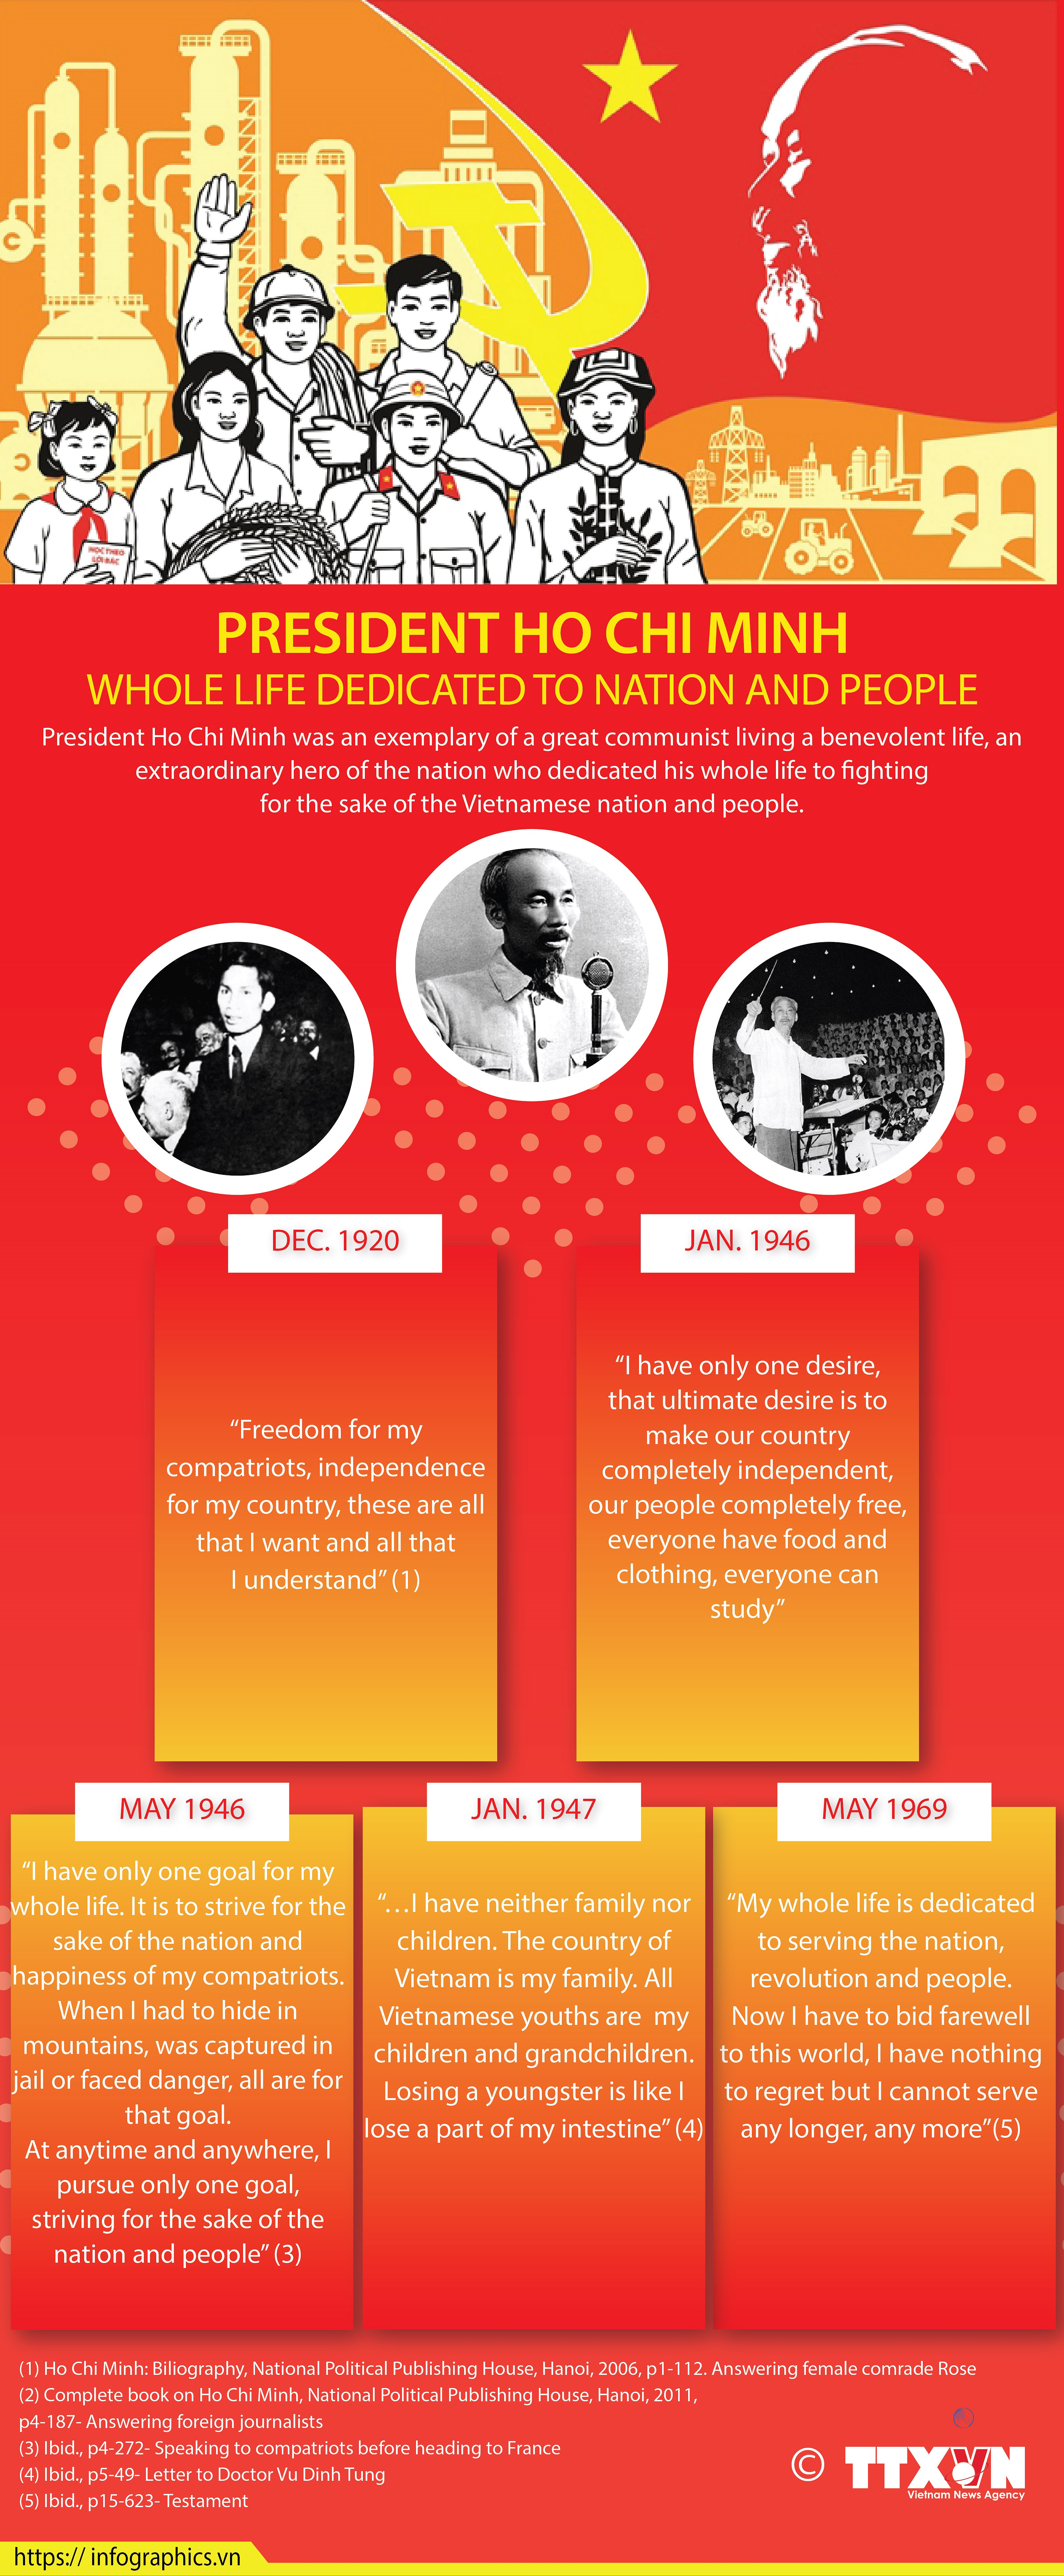 A look back at Ho Chi Minh's journey seeking a path to national liberation hinh anh 6